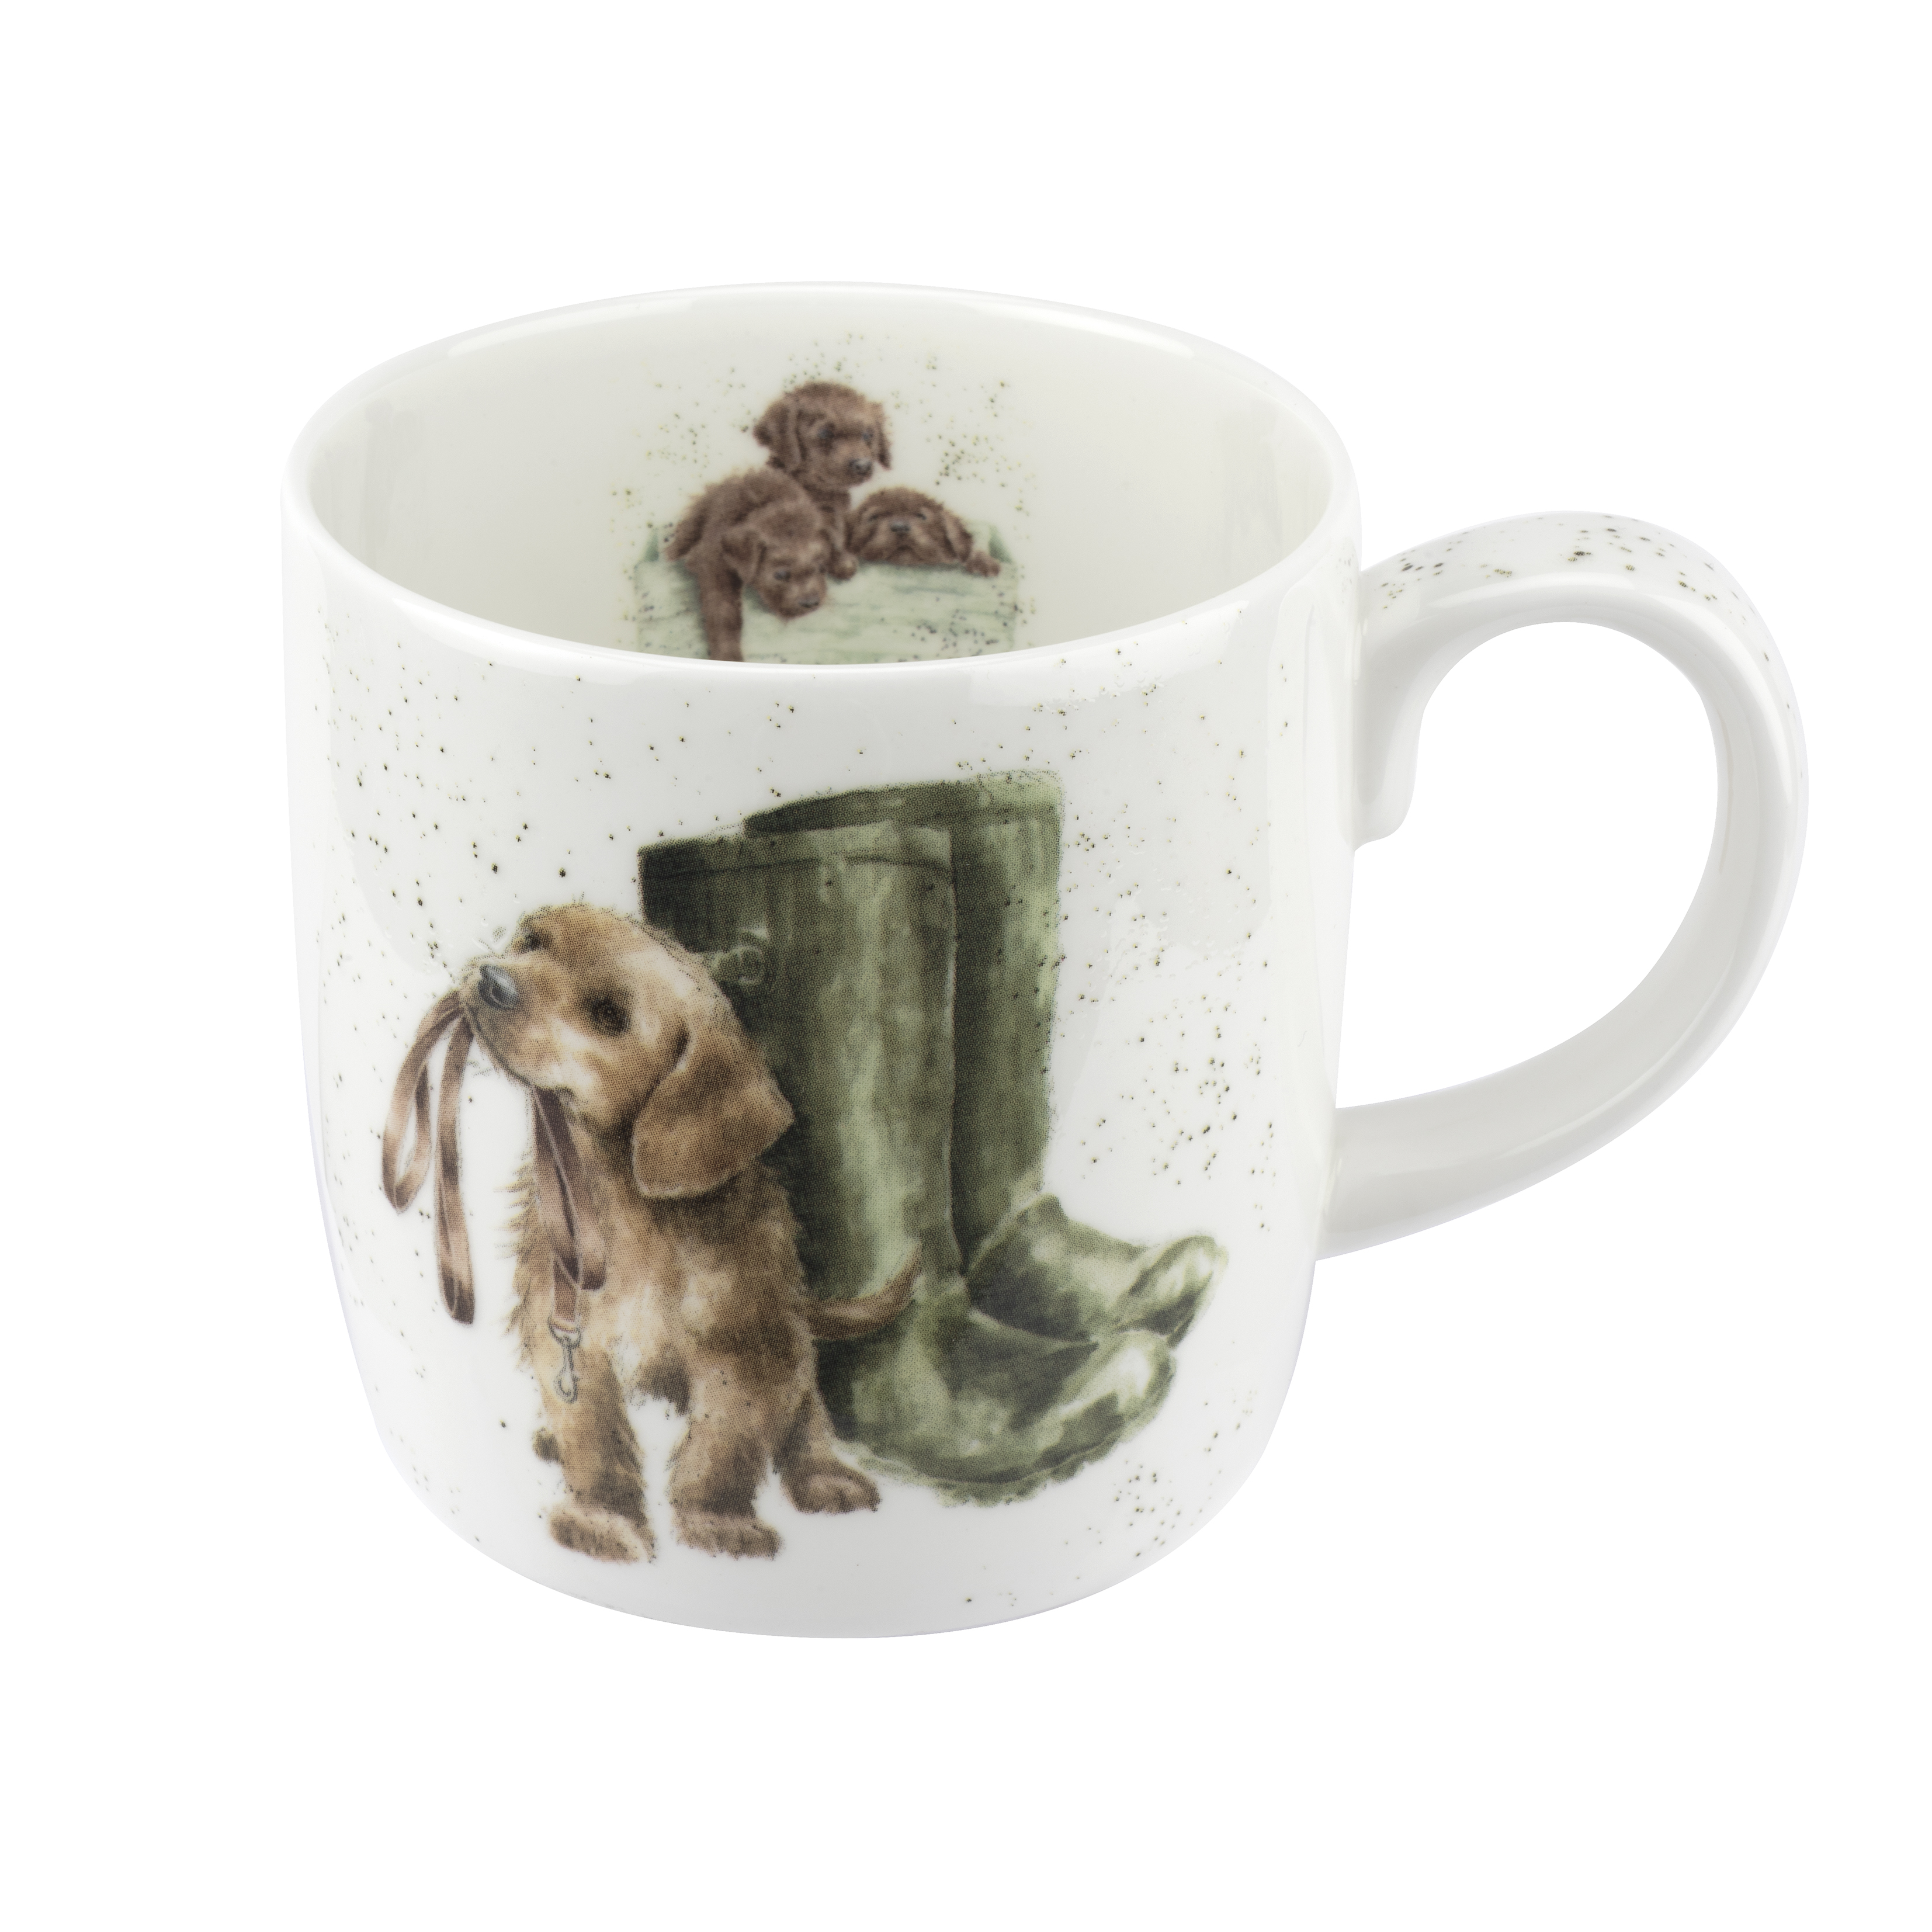 Royal Worcester Wrendale Designs Mug 14 Ounce Hopeful (Dog) image number 0